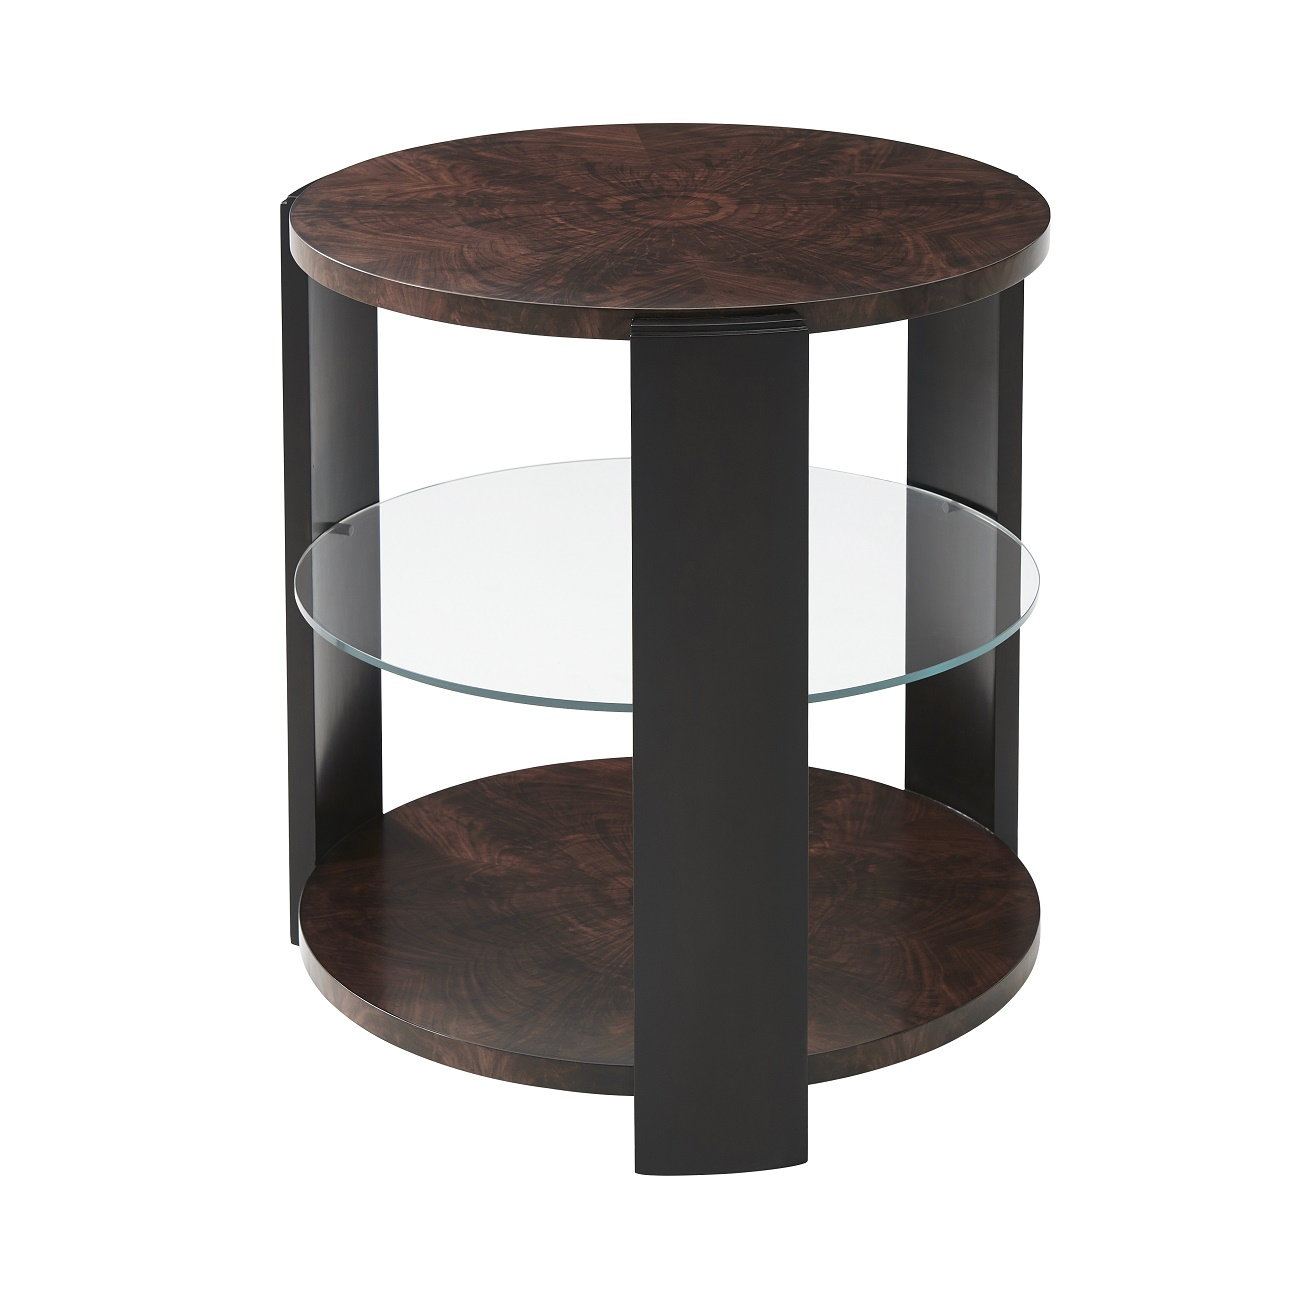 Eclectics Walnut Reflection Accent Table 5005 640 theodore alexander